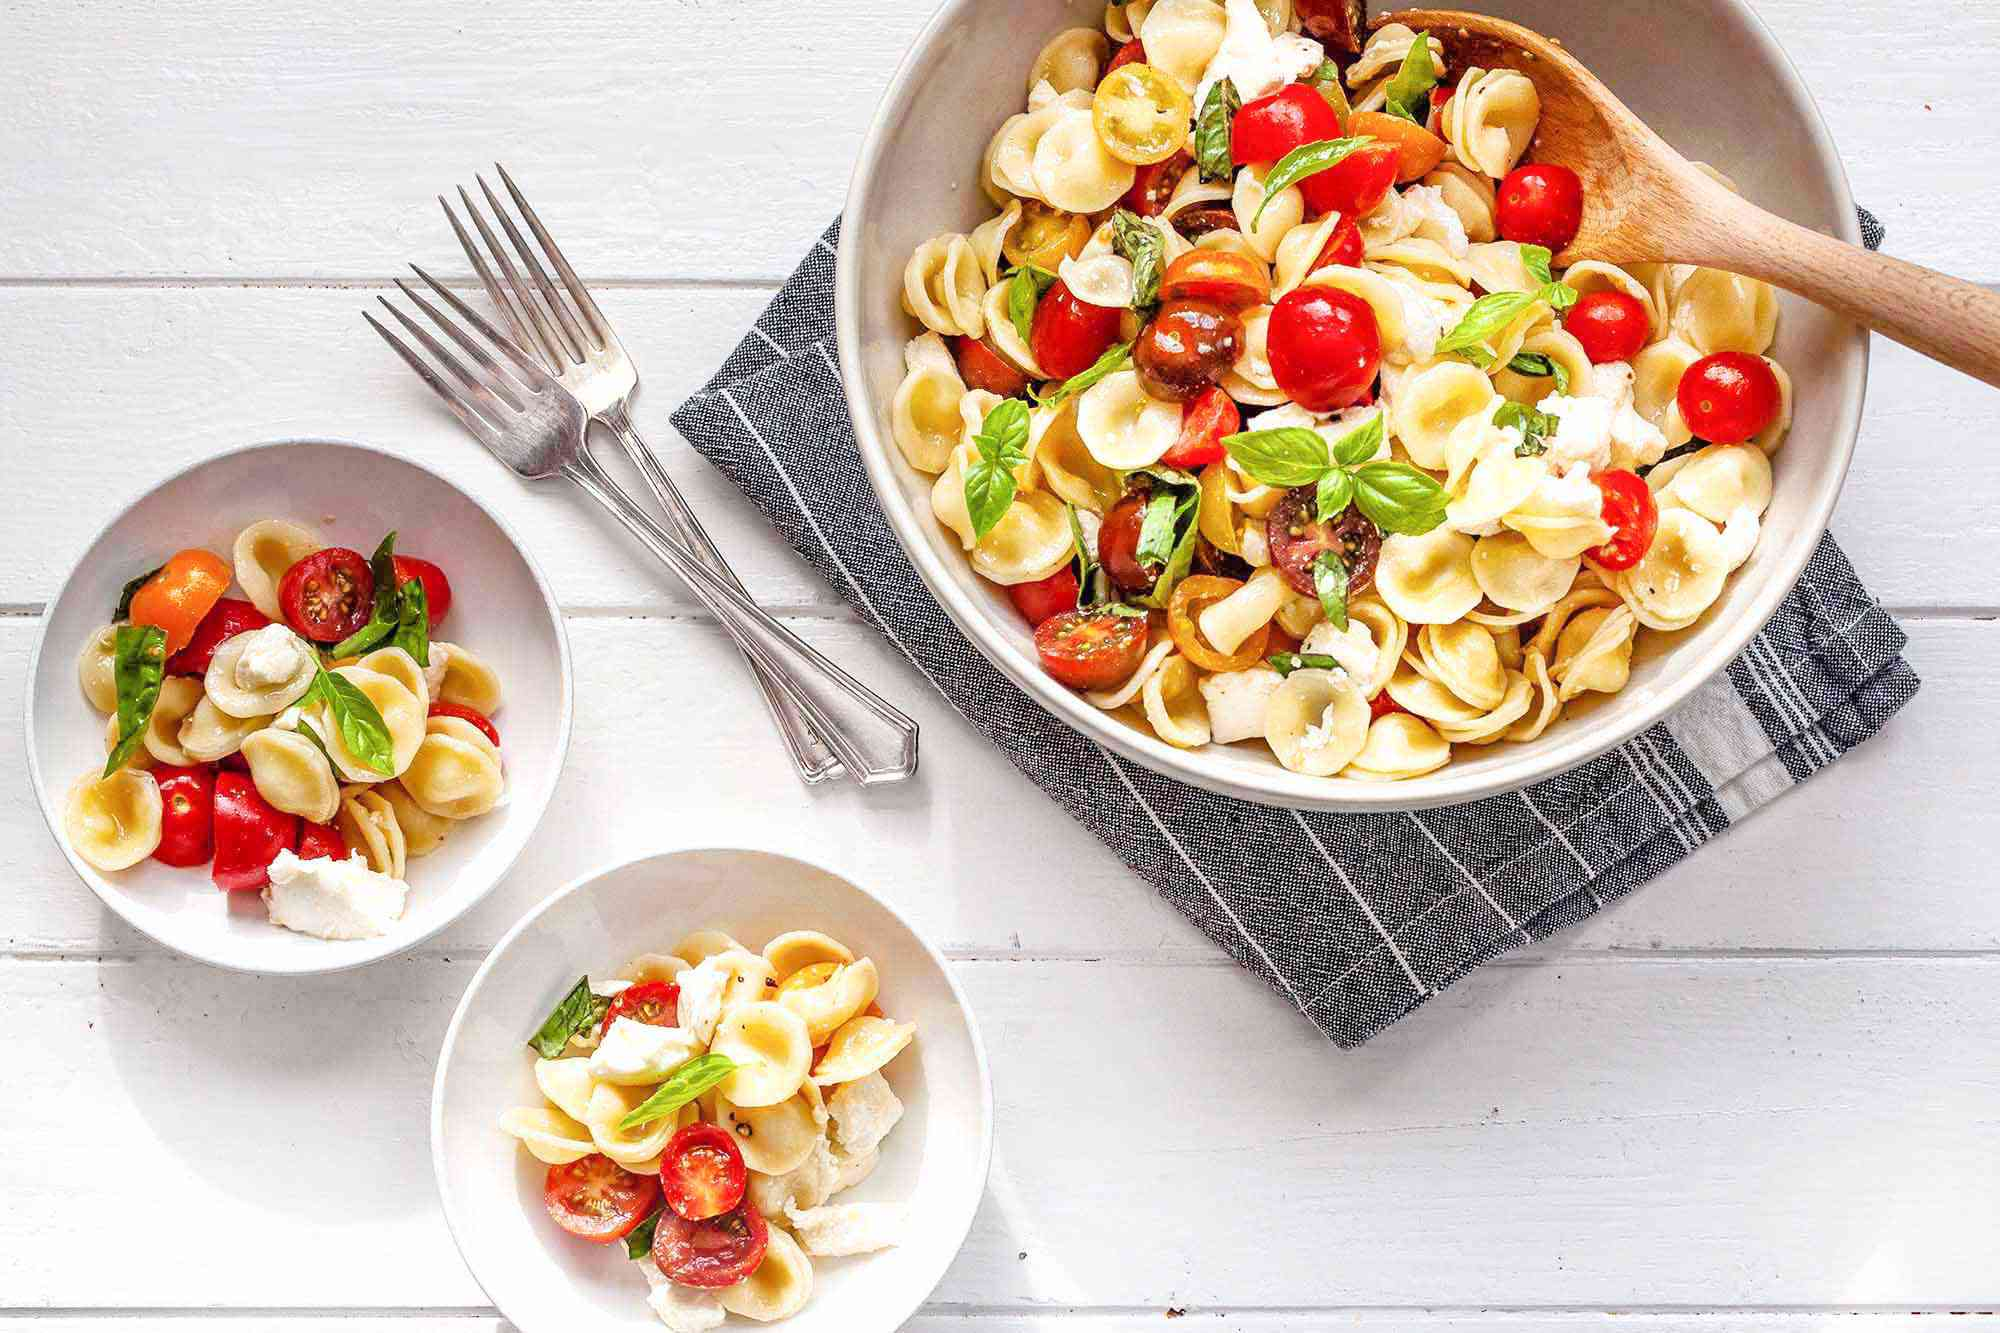 How to Make Caprese Pasta Salad - bowl of caprese salad with pasta with two smaller bowls and forks